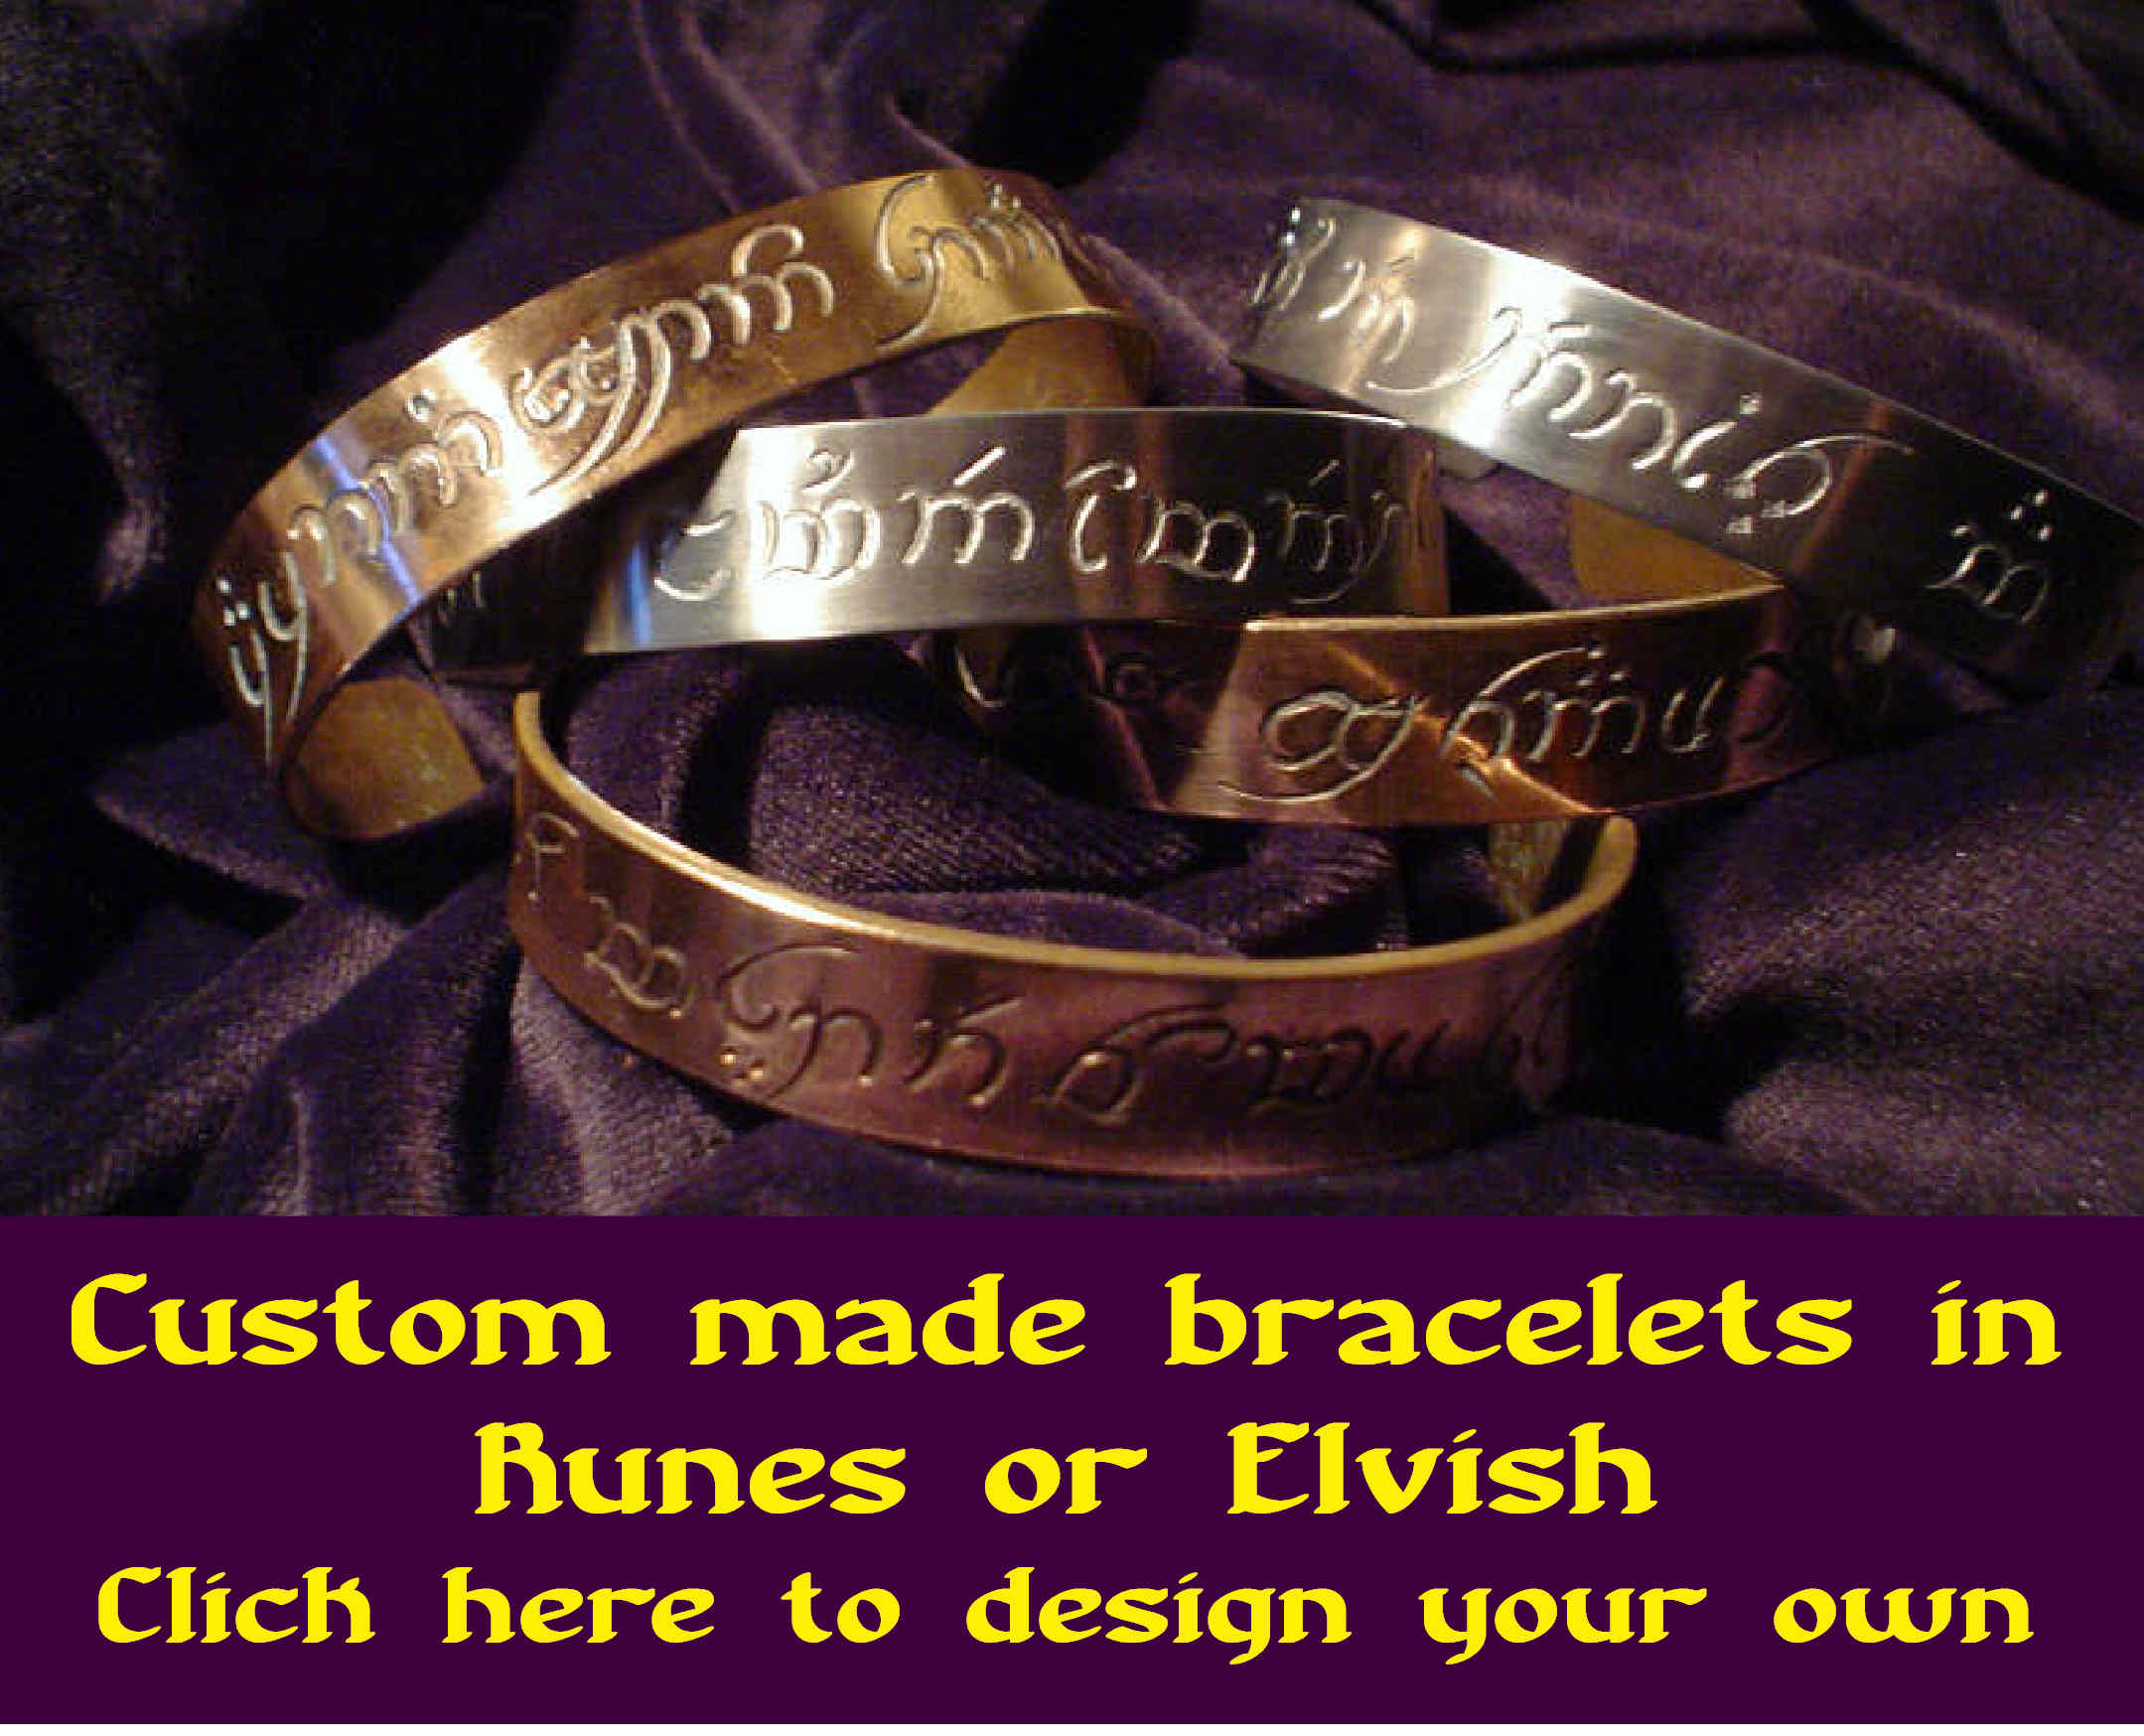 Click for custom made bracelets.